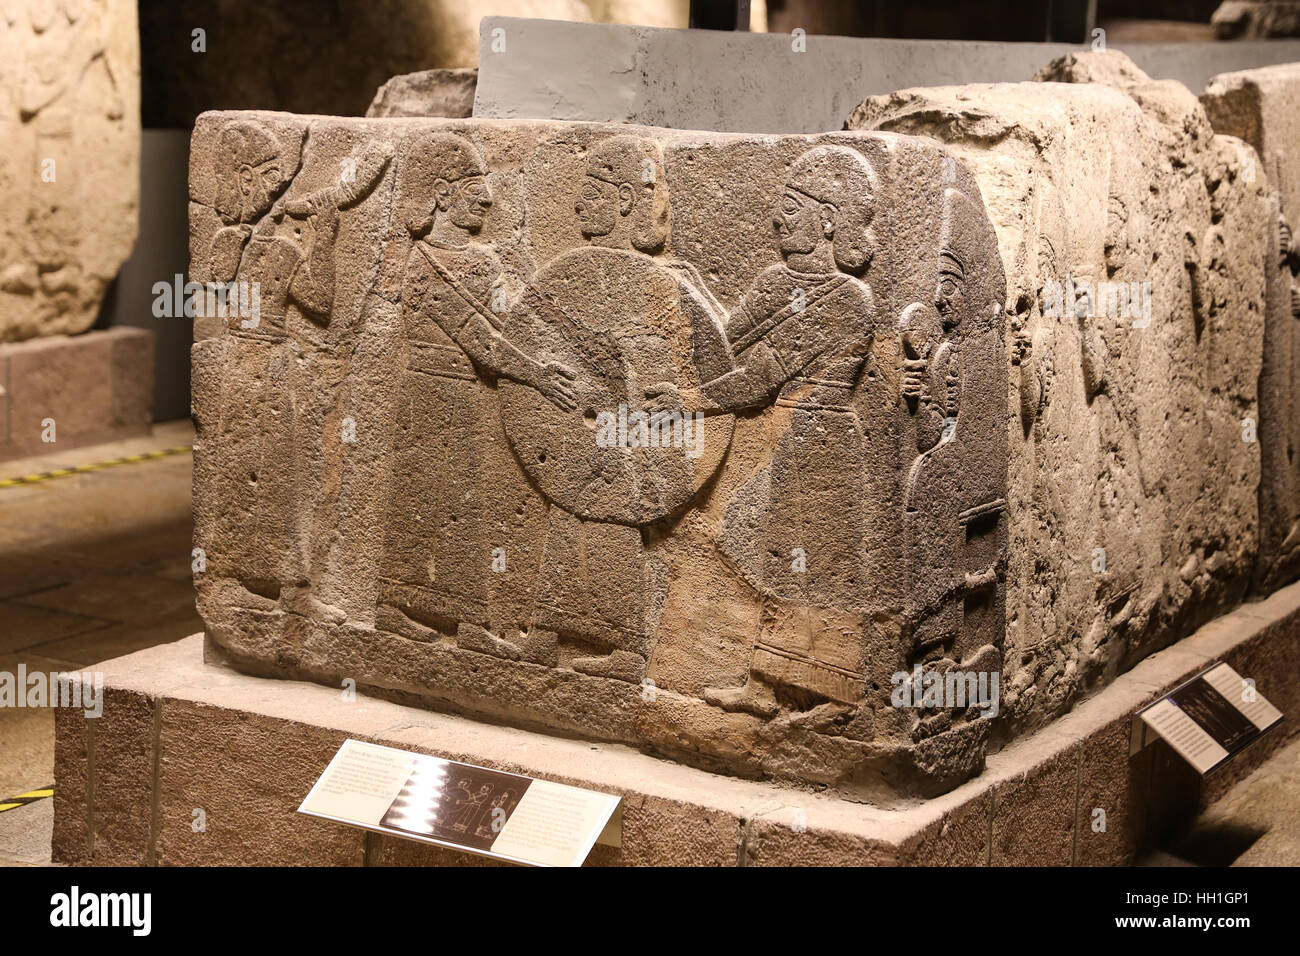 Orthostats of procession in Museum of Anatolian Civilizations, Ankara, Turkey Stock Photo